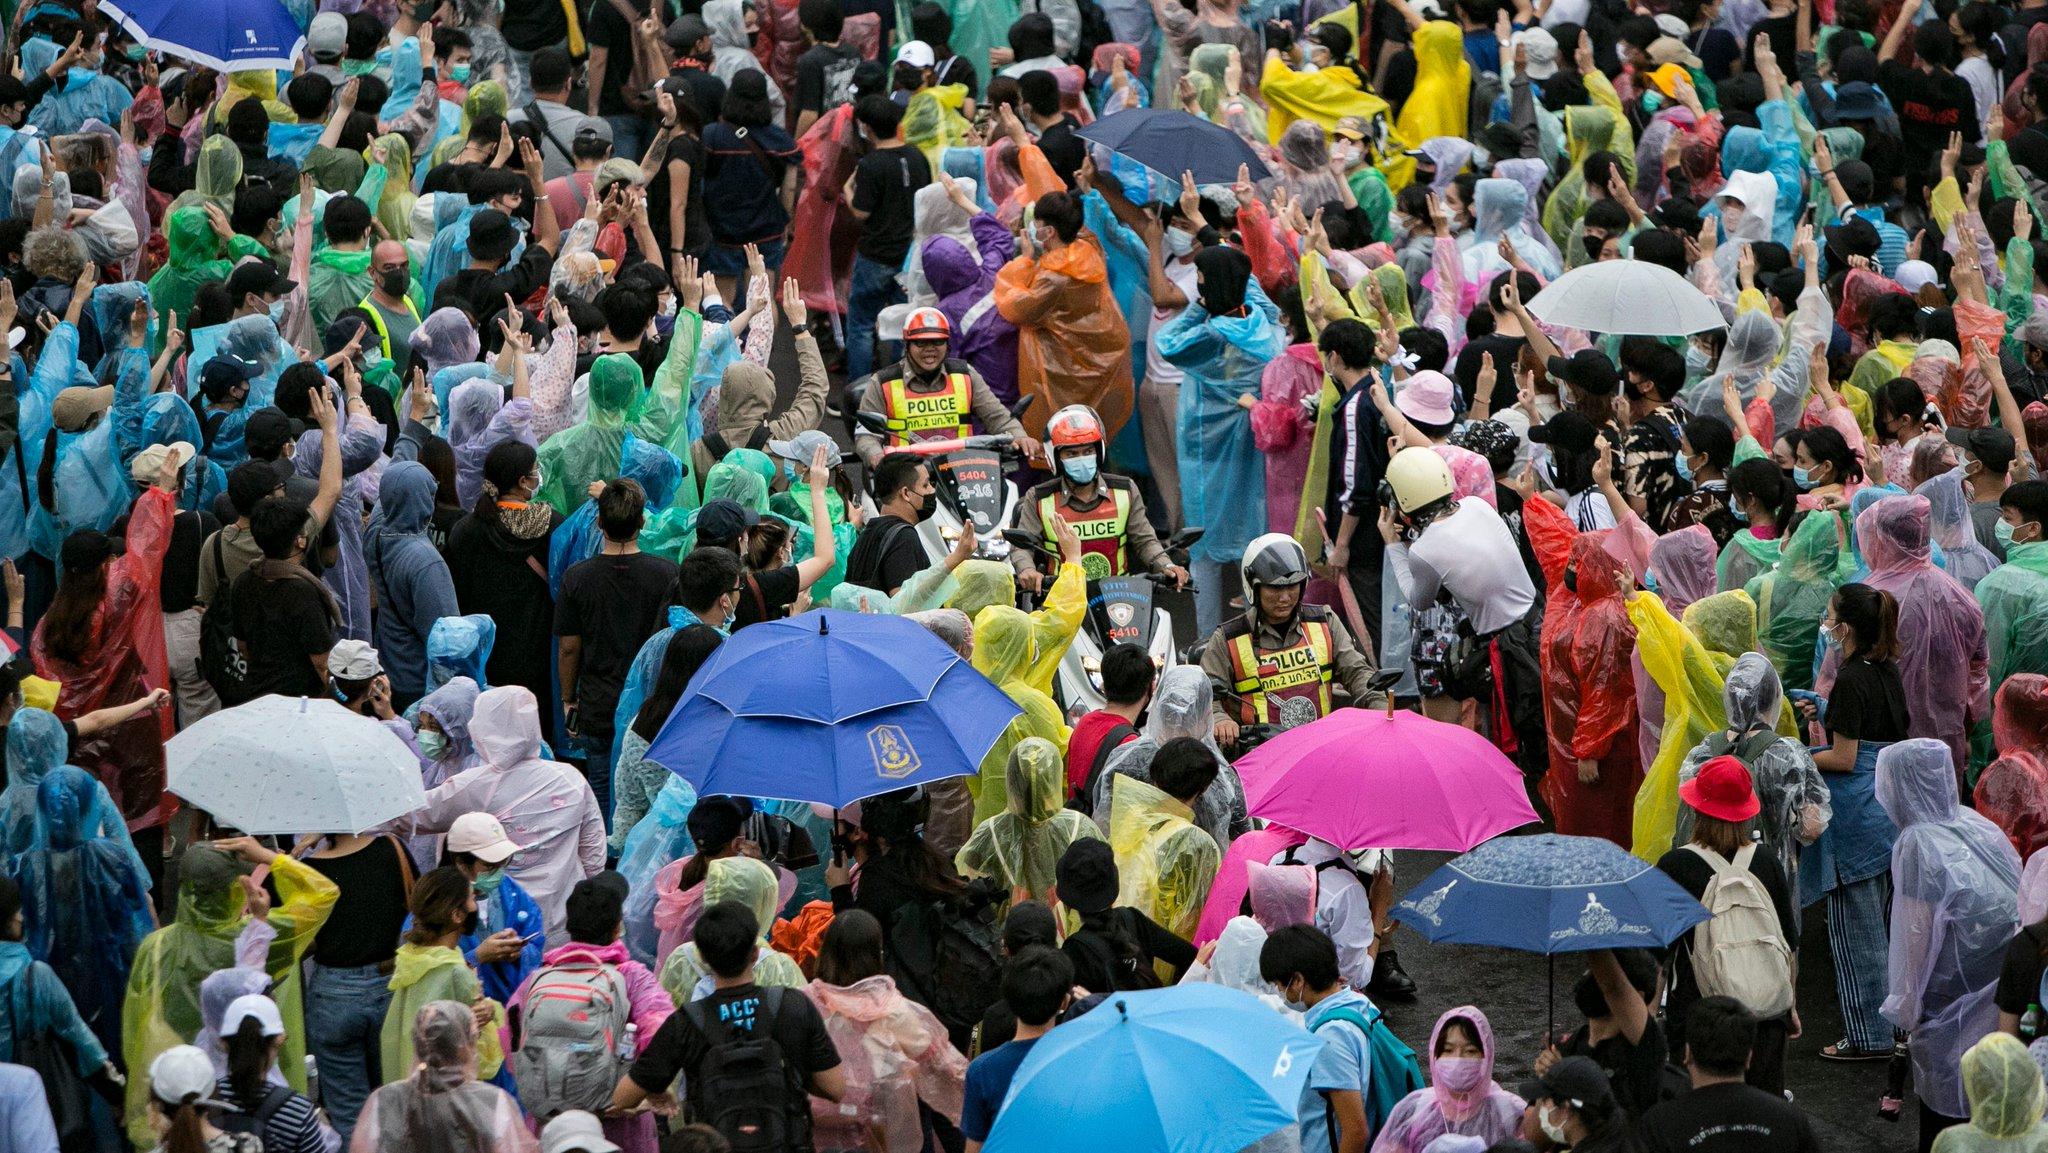 Transit shutdowns fail to deter fourth day of Thai pro-democracy protests in Bangkok Photo